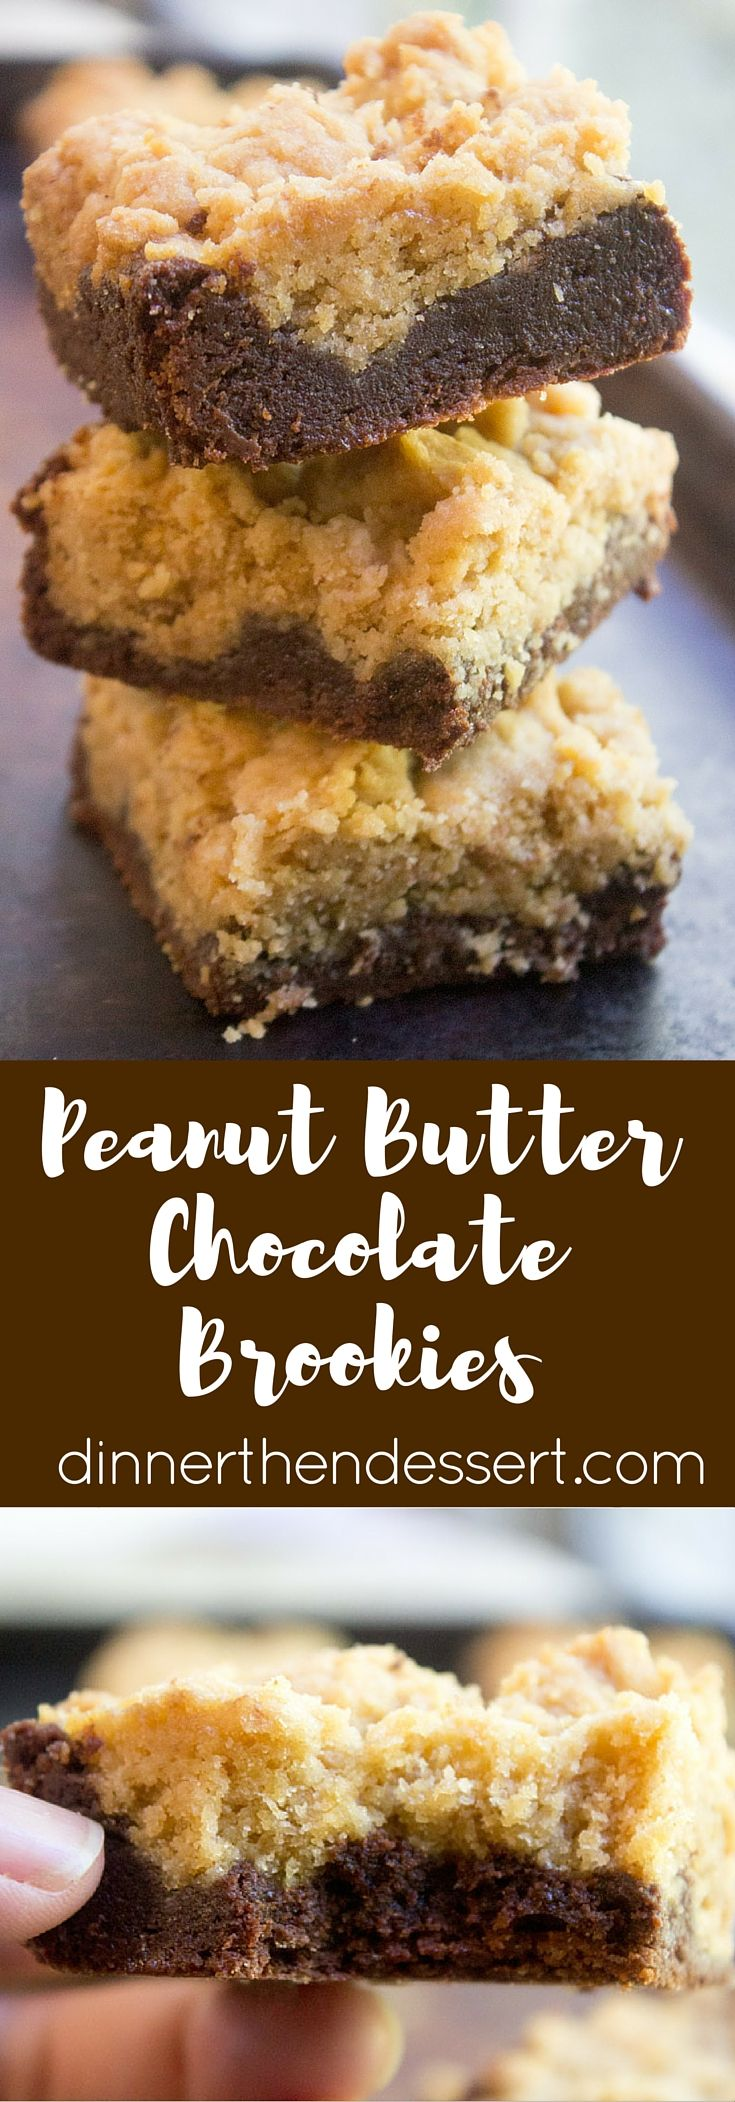 Peanut Butter Chocolate Brookies are an indulgent combo of rich Peanut Butter…